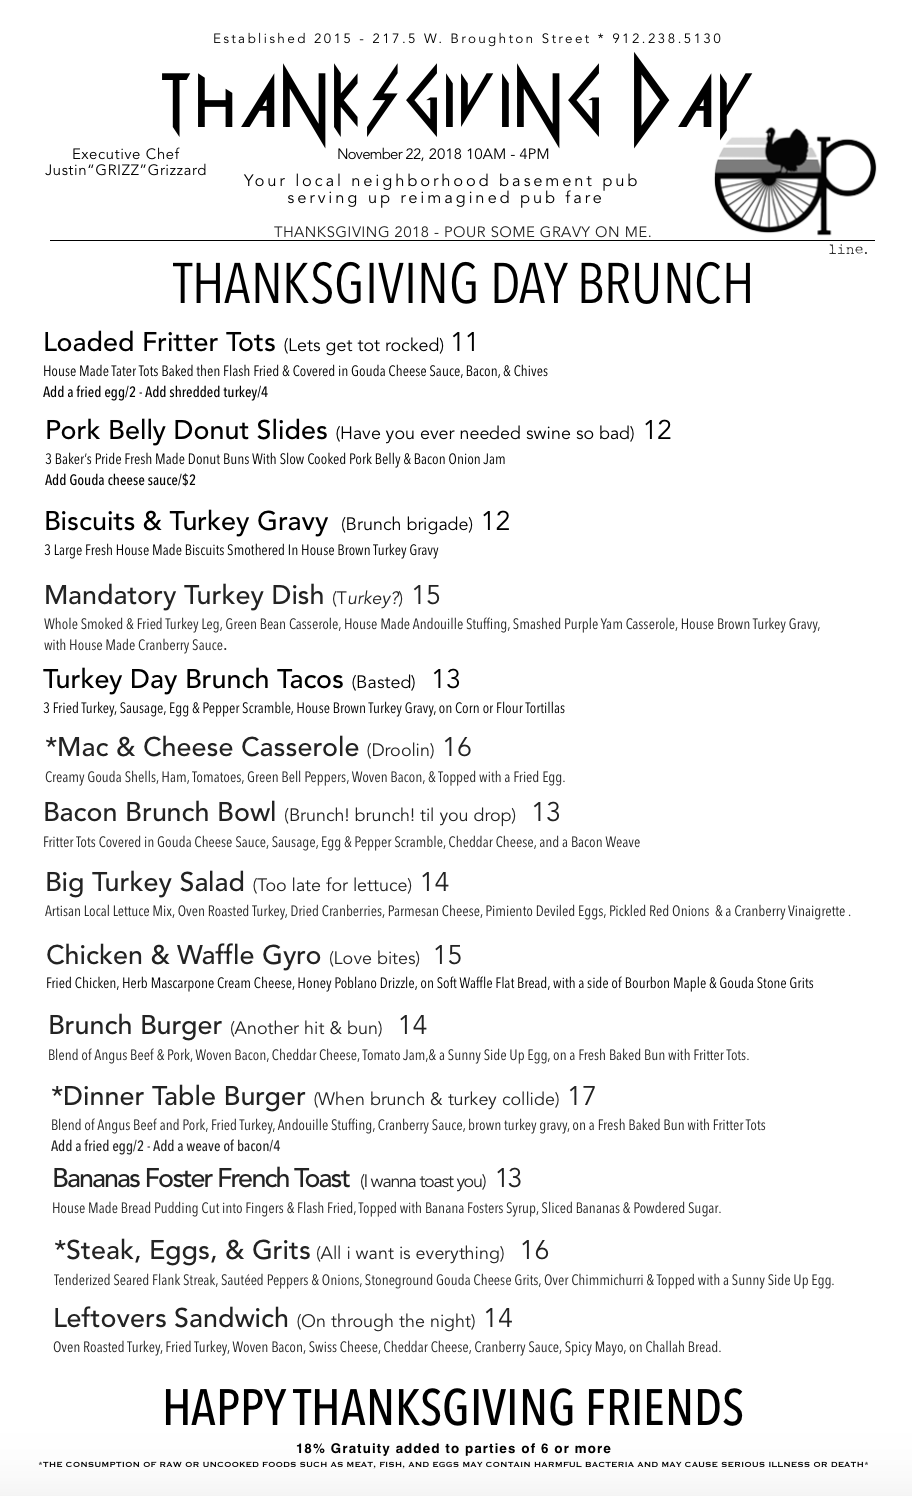 THANKSGIVING DAY MENU 2018 - OUR 2018 THANKSGIVING BRUNCH MENU.